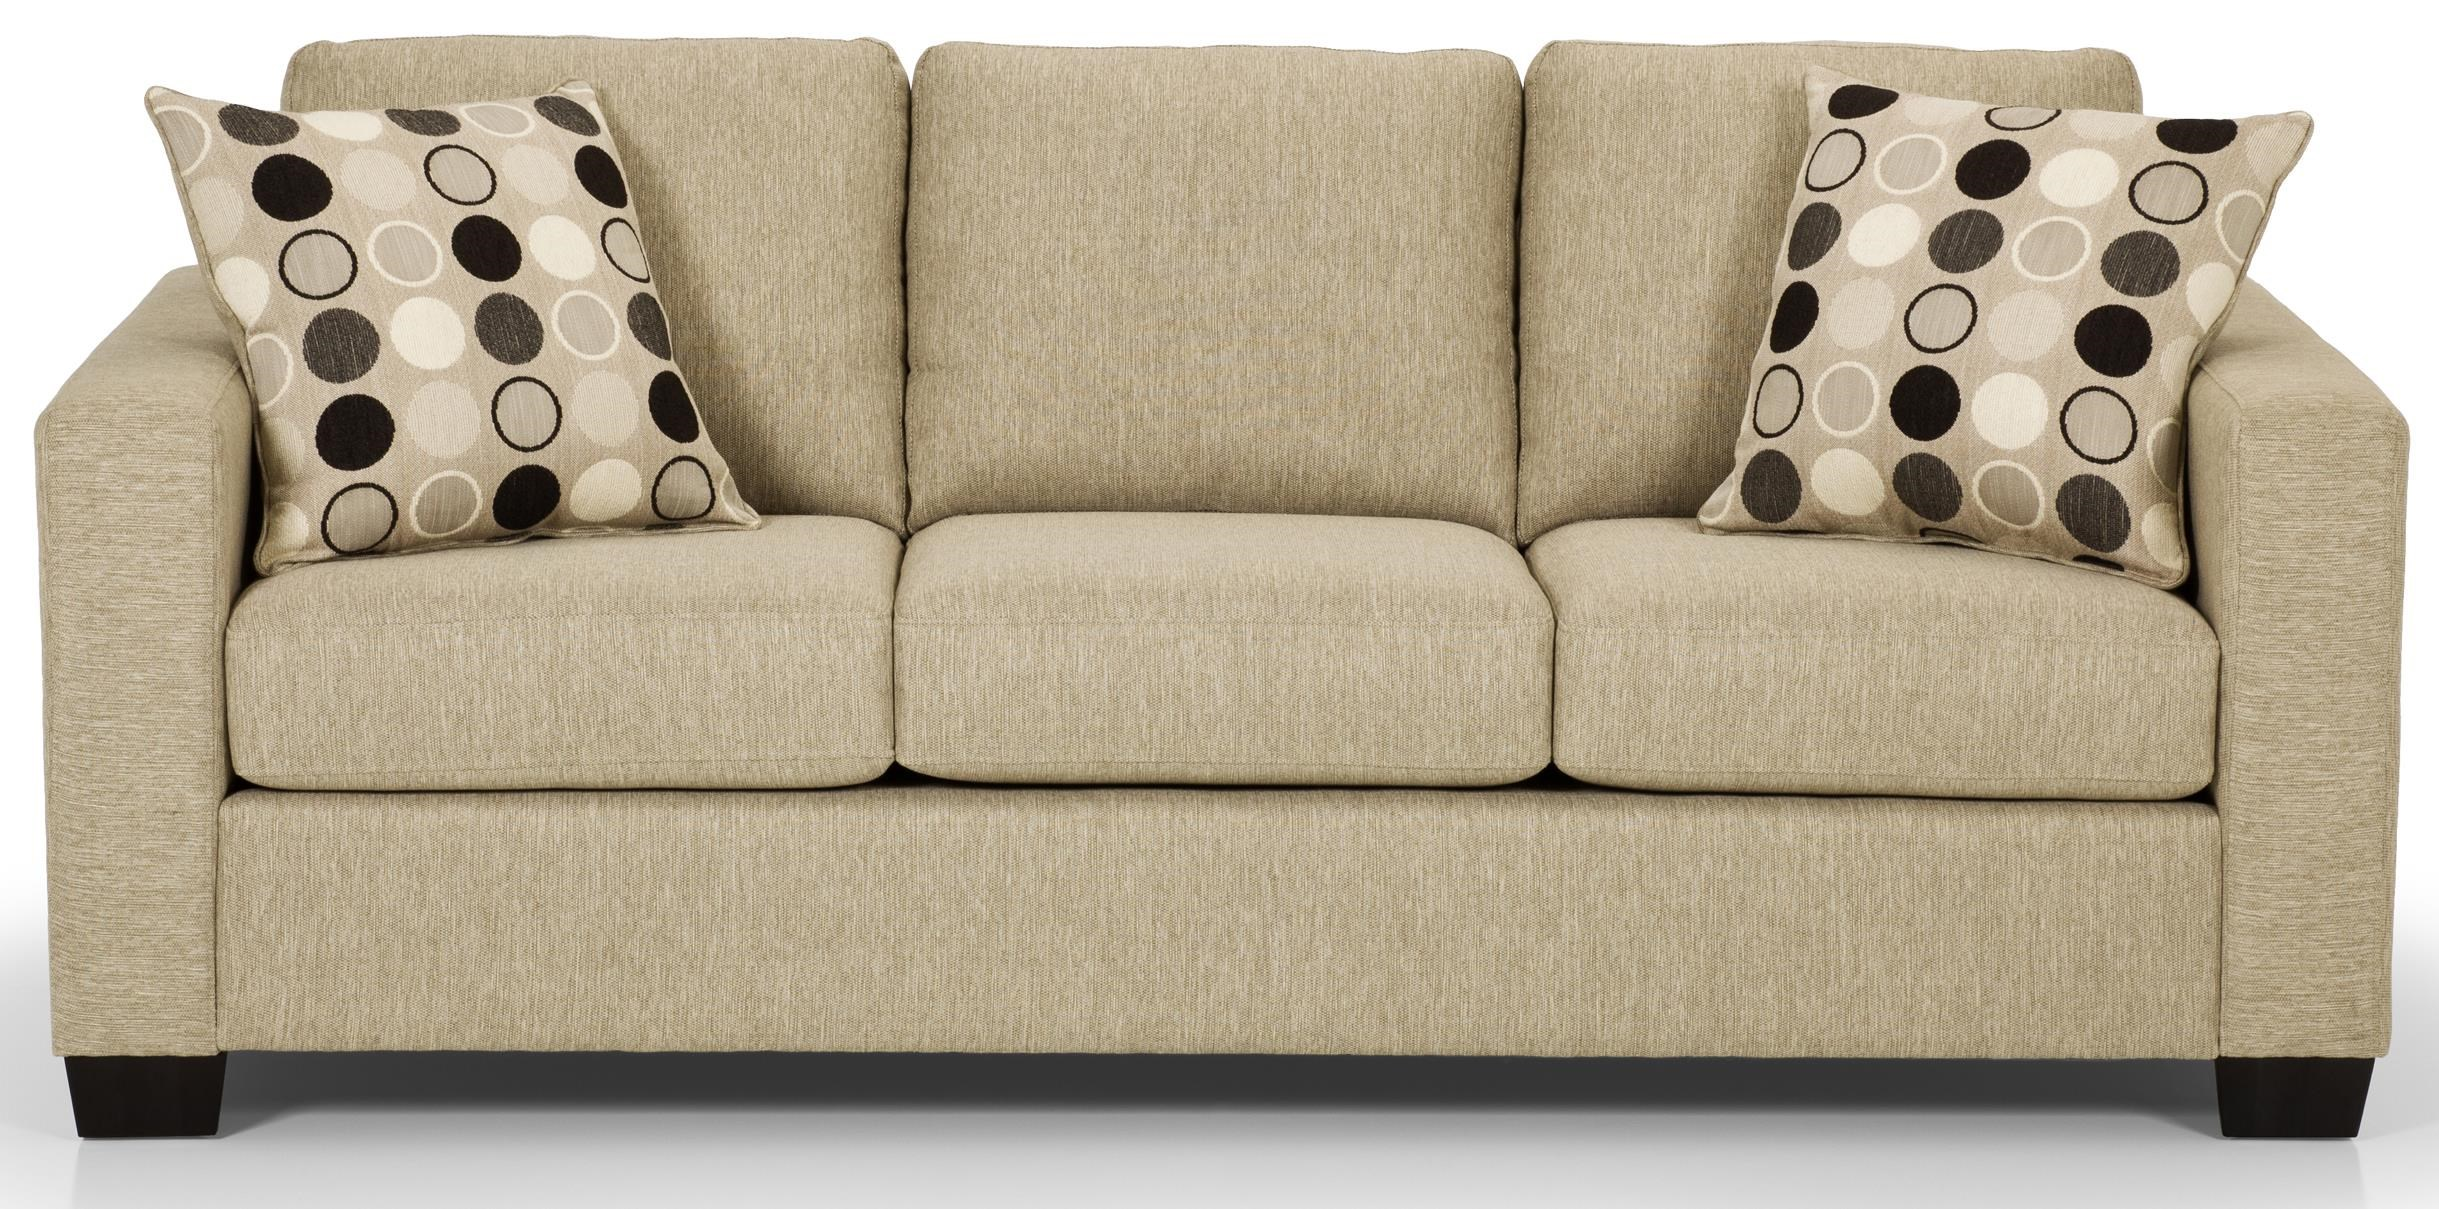 Square Sofa 702 Contemorary Sofa With 2 Accent Pillows By Sunset Home At Walker S Furniture